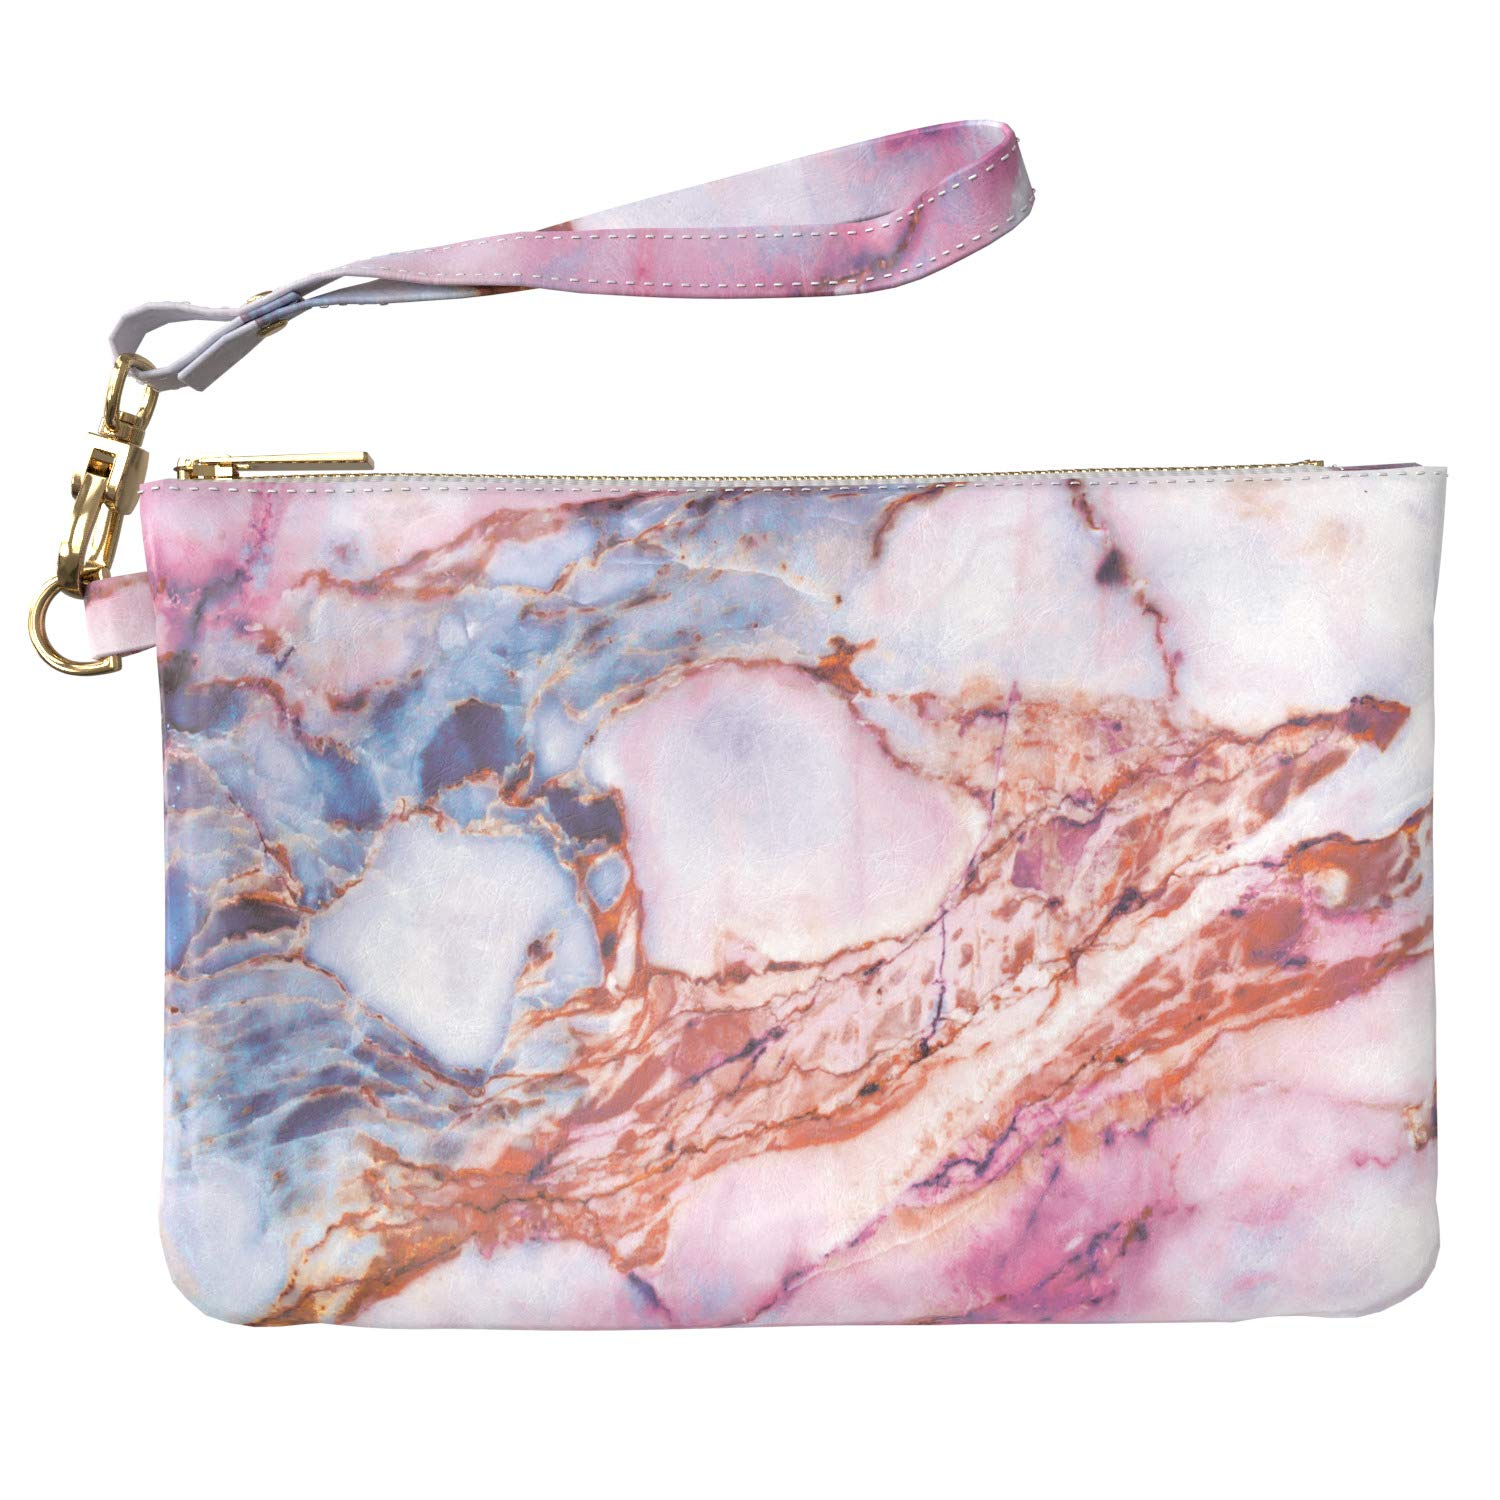 Lex Altern Makeup Bag 9.5 x 6 inch Aesthetic Pink Marble Stone Nature Colored Travel PU Leather Case Toiletry Women Zipper Organizer Storage Wristband Girly Accessories Print Purse Pouch Cosmetic